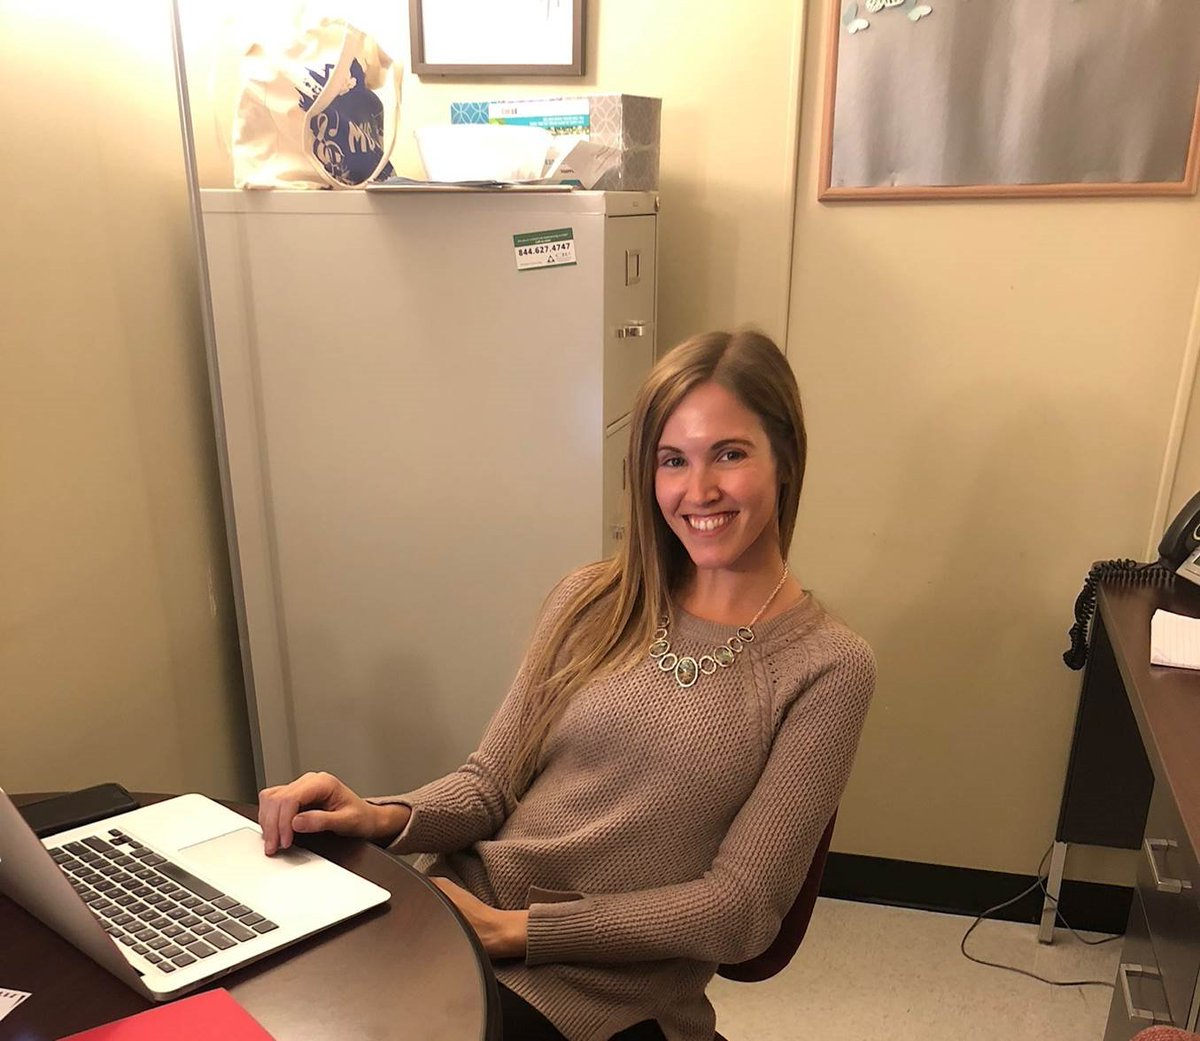 This week is Psychology Awareness Week. Thank you Jen Phillipp for all that you do. We recognize you! <a target='_blank' href='http://search.twitter.com/search?q=SPAW2019'><a target='_blank' href='https://twitter.com/hashtag/SPAW2019?src=hash'>#SPAW2019</a></a> <a target='_blank' href='http://search.twitter.com/search?q=SchoolPsychs4APSVA'><a target='_blank' href='https://twitter.com/hashtag/SchoolPsychs4APSVA?src=hash'>#SchoolPsychs4APSVA</a></a> <a target='_blank' href='https://t.co/FtISgPGmbu'>https://t.co/FtISgPGmbu</a>